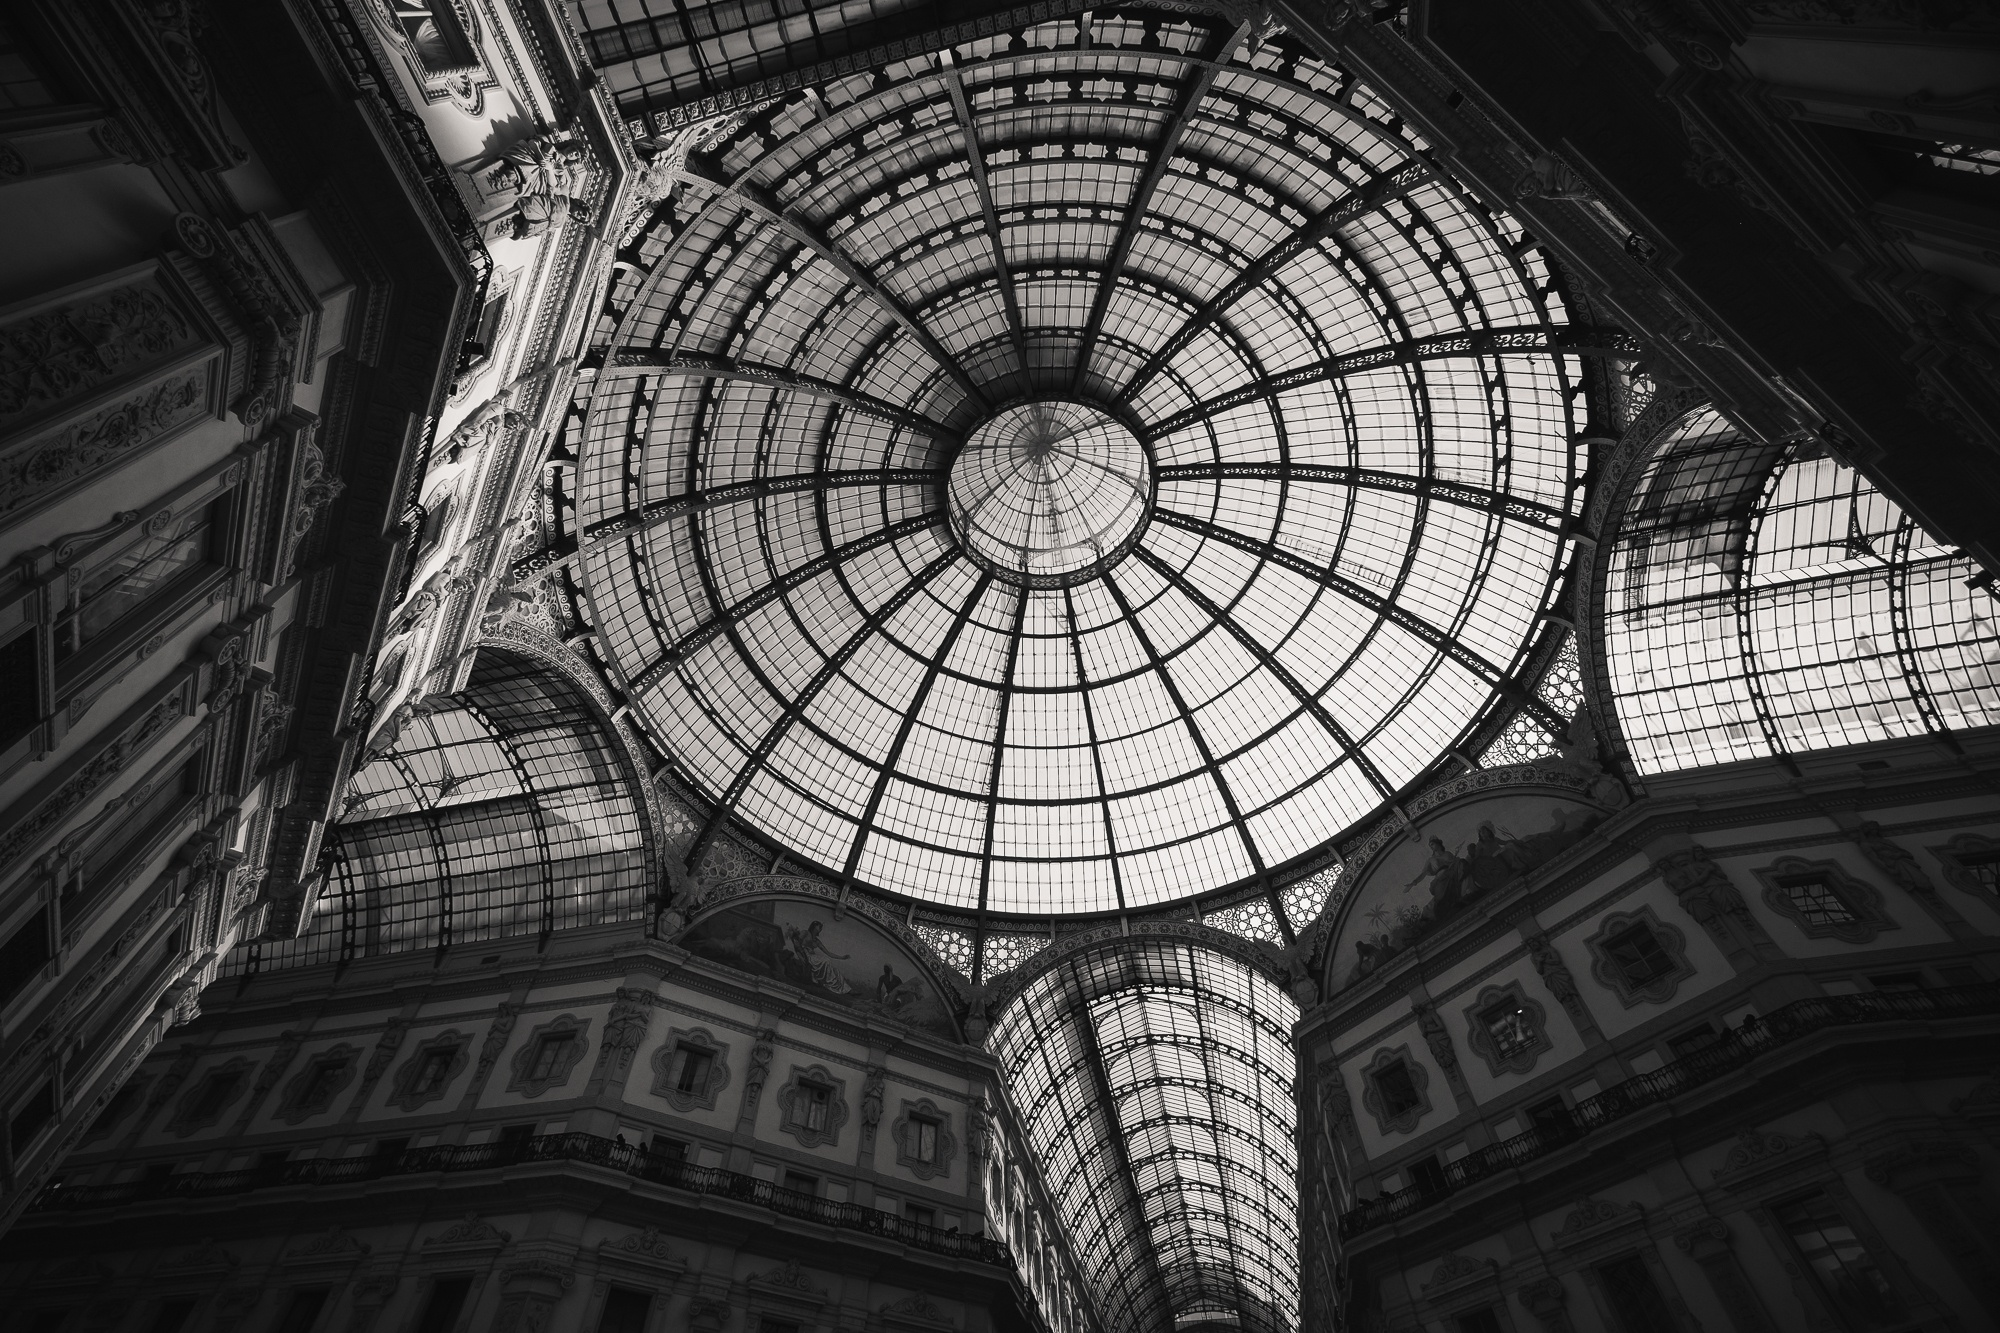 galleria vitore emanule roaming ralph photography milan travel guide